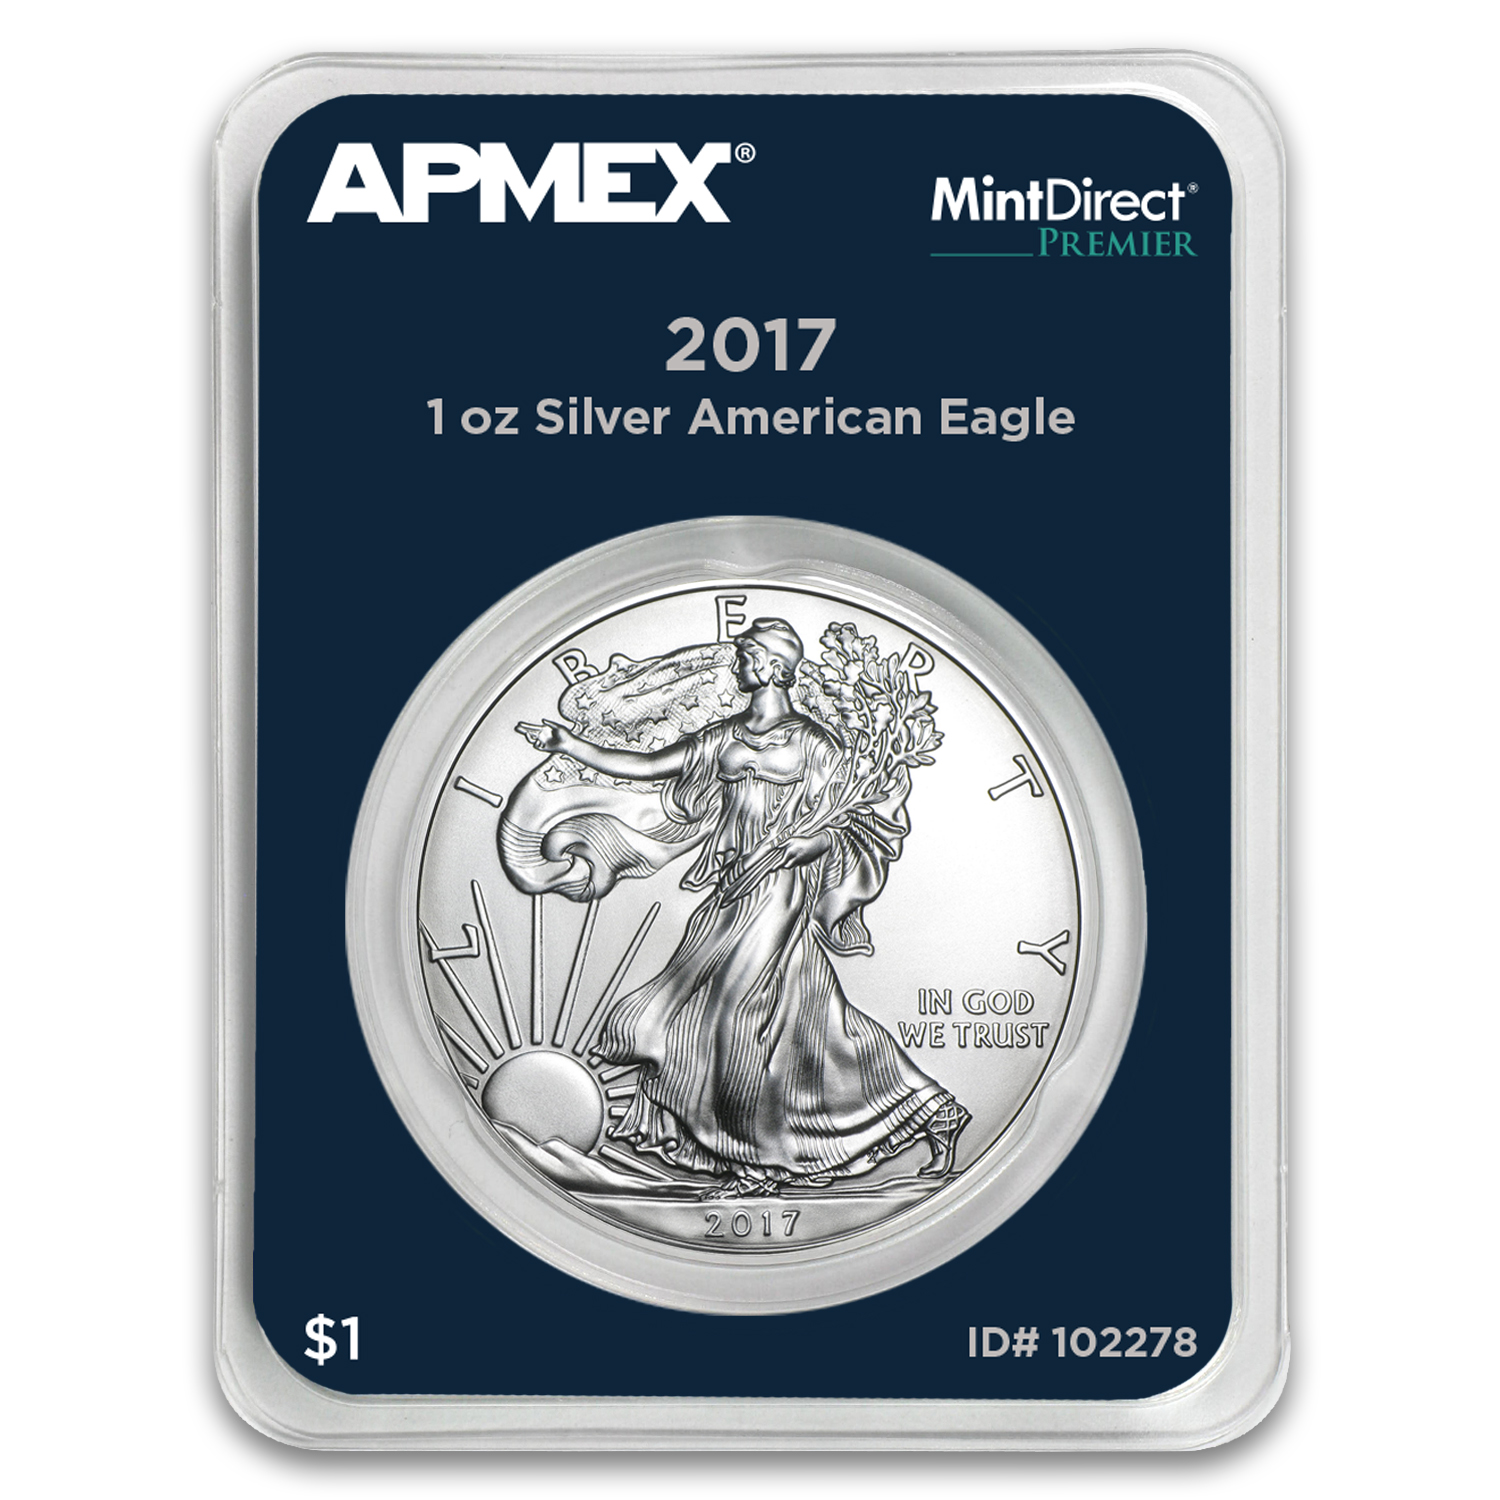 2017 1 oz Silver American Eagle (MintDirect® Premier Single)